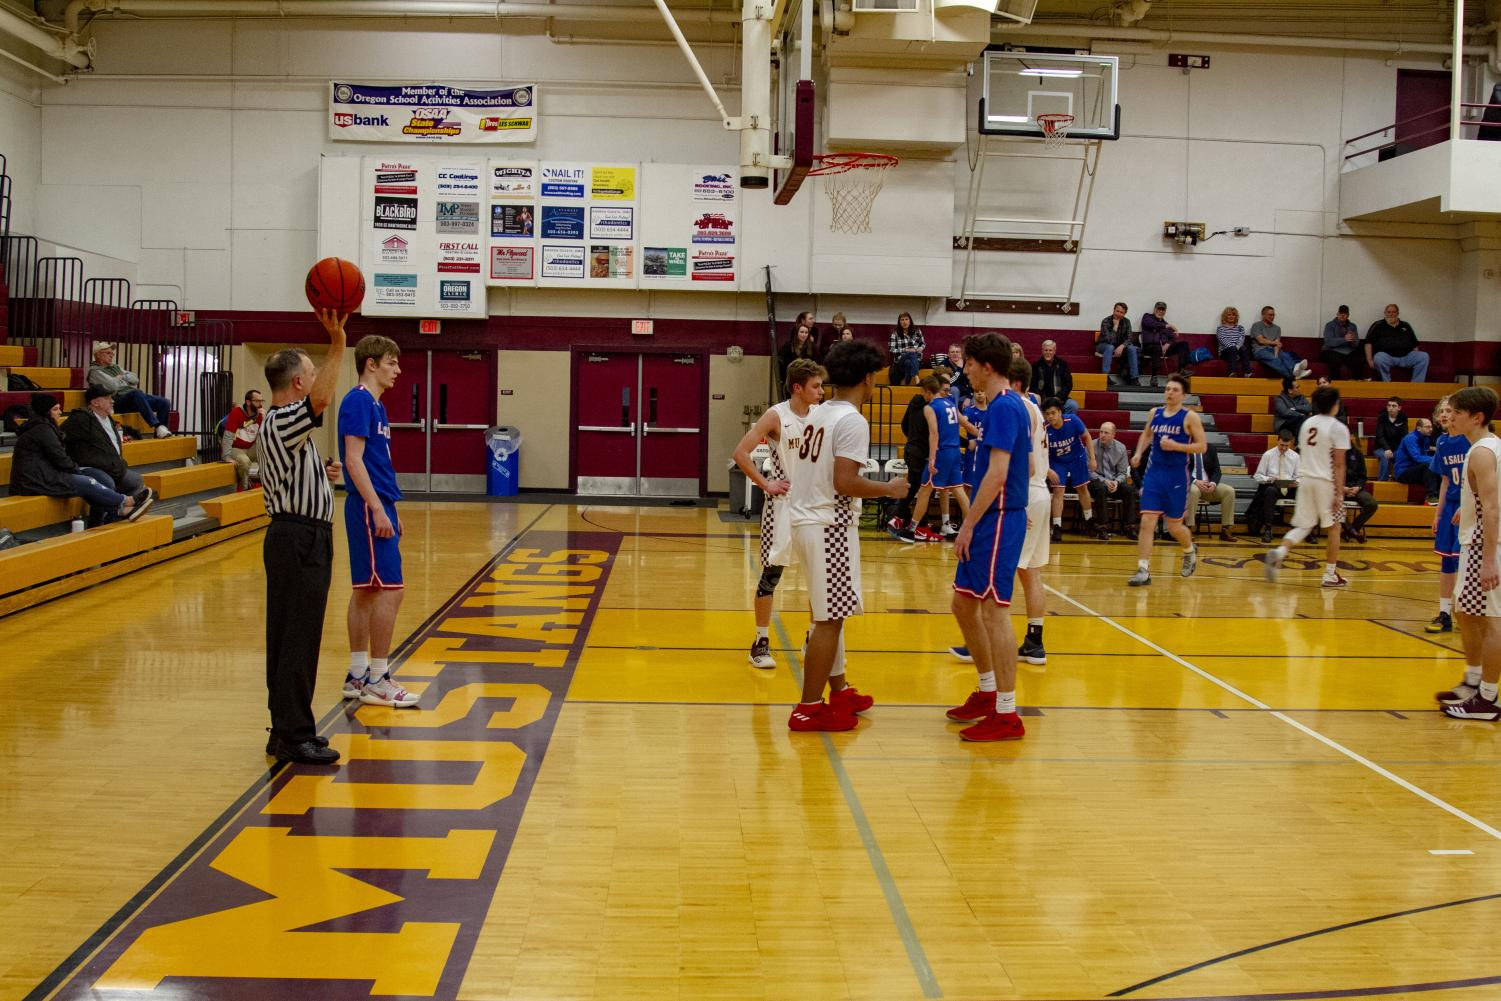 Senior Jace Norton prepares to bring the ball back into the game against #18 Milwaukie.